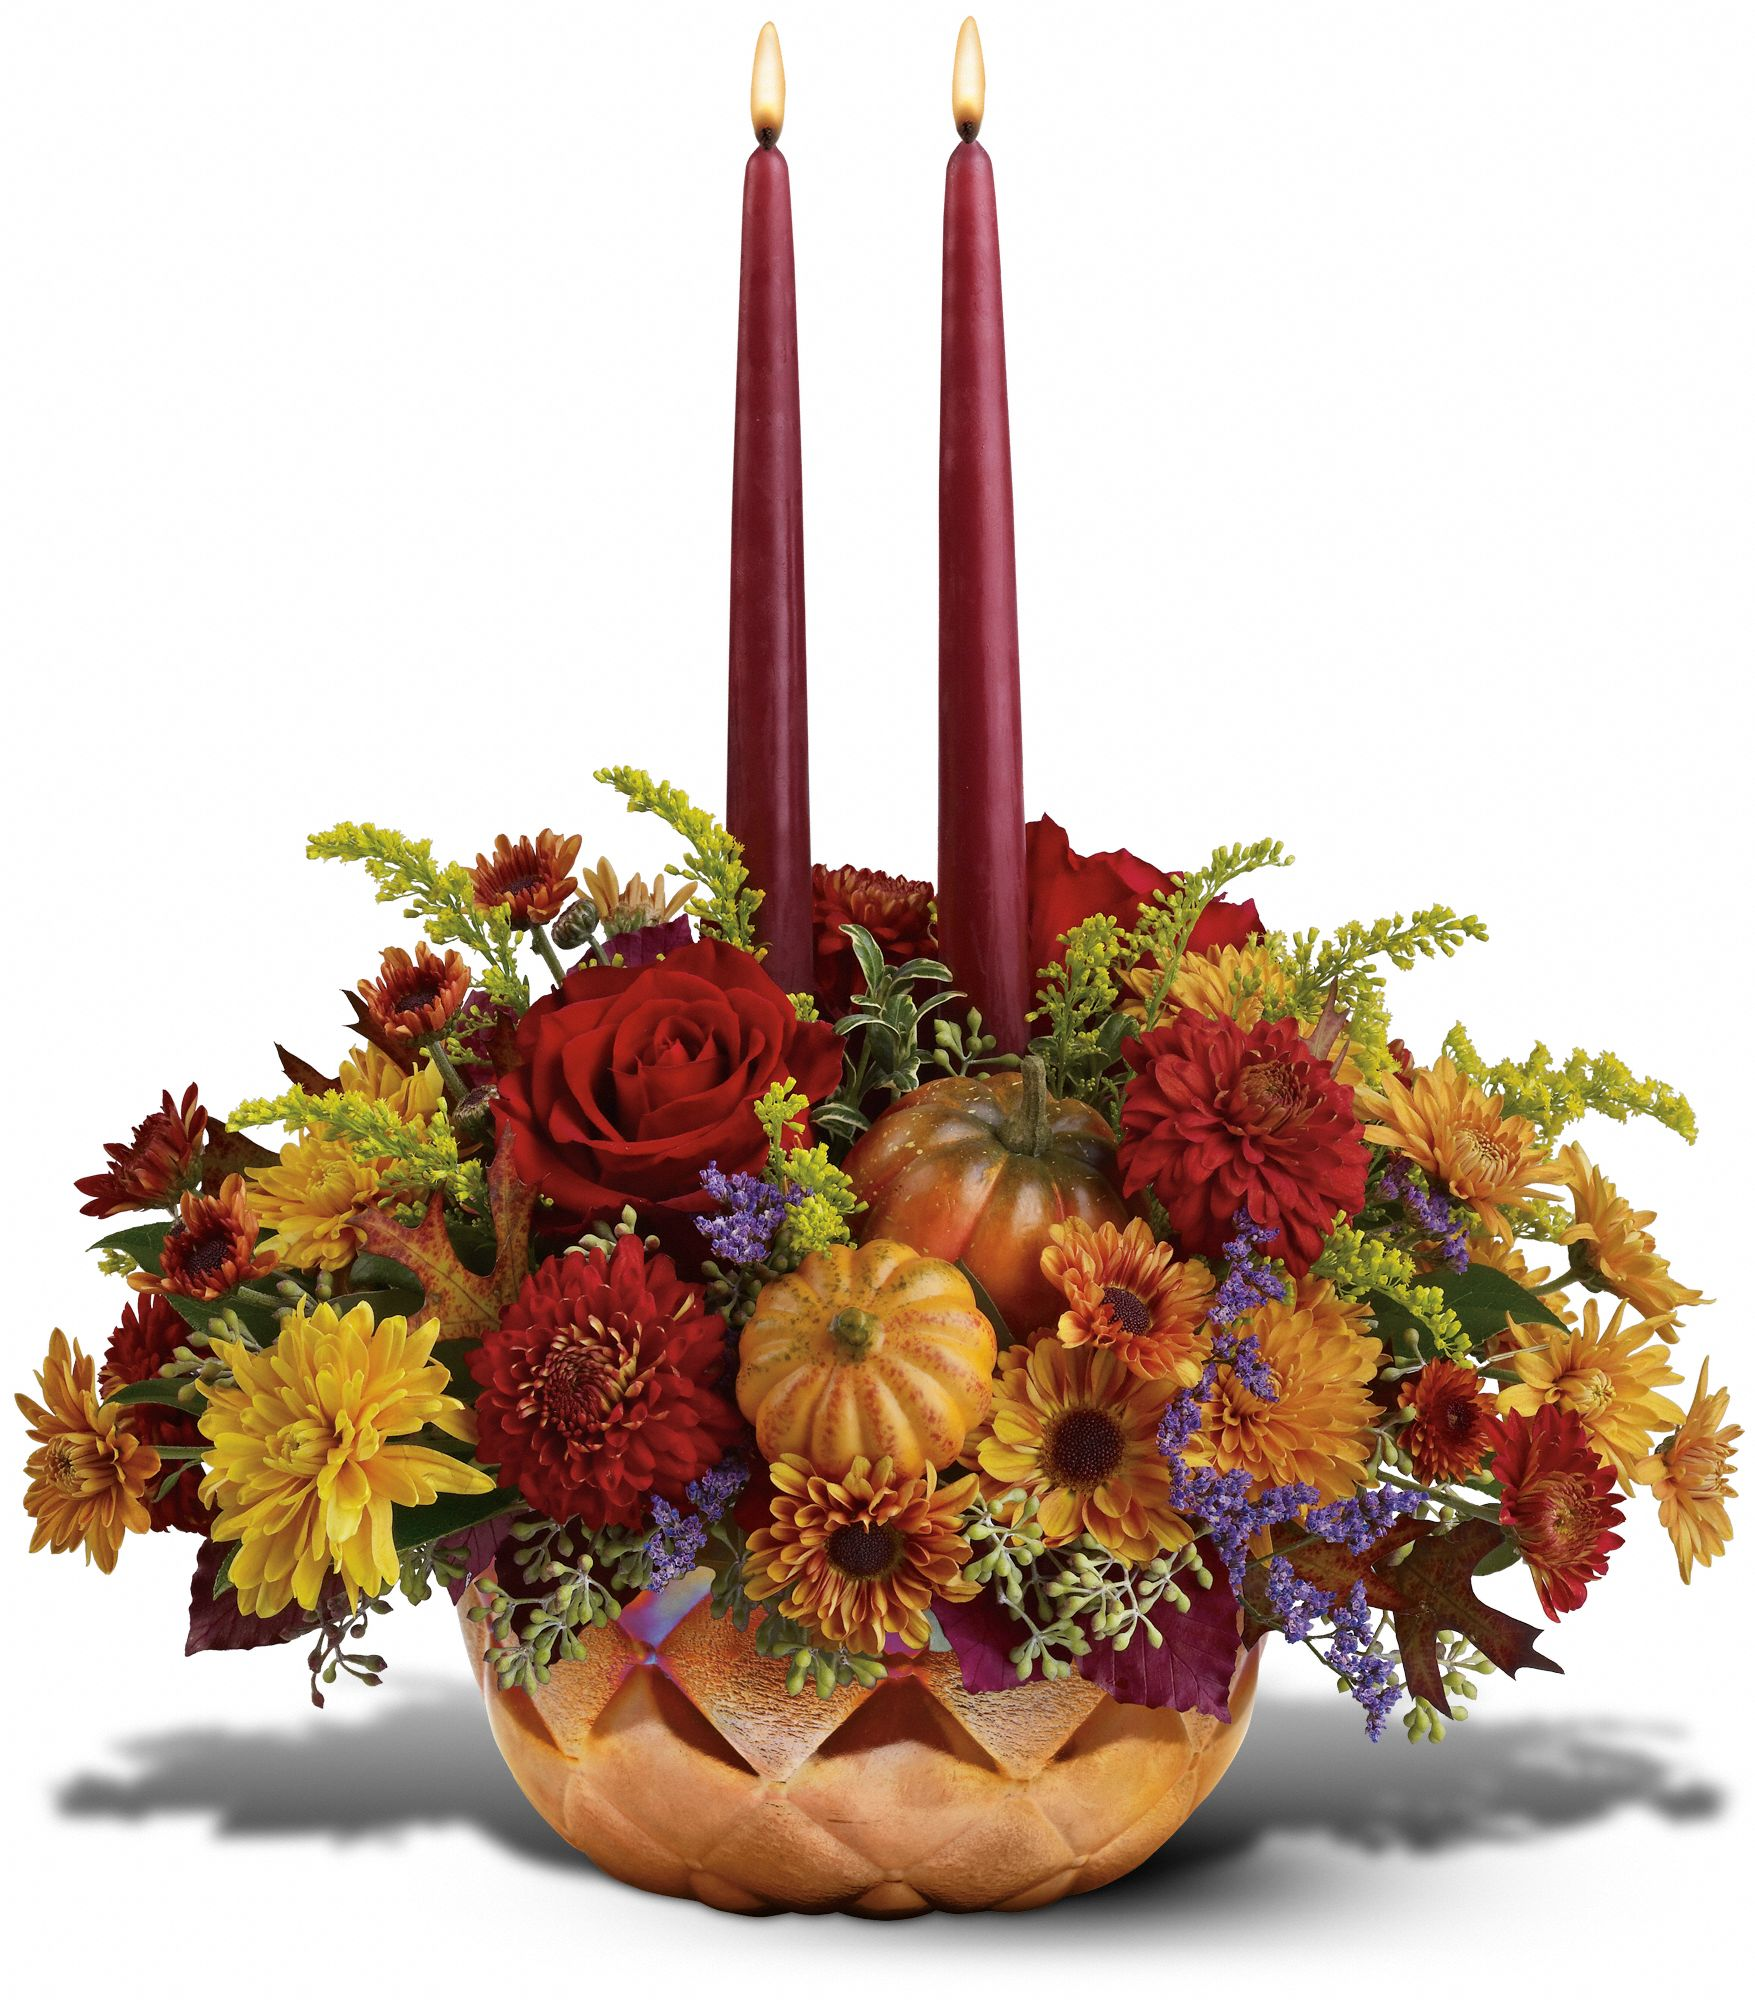 Beck Floral & Gift, Neosho, Missouri - Teleflora's Autumn Iridescence Bouquet, picture